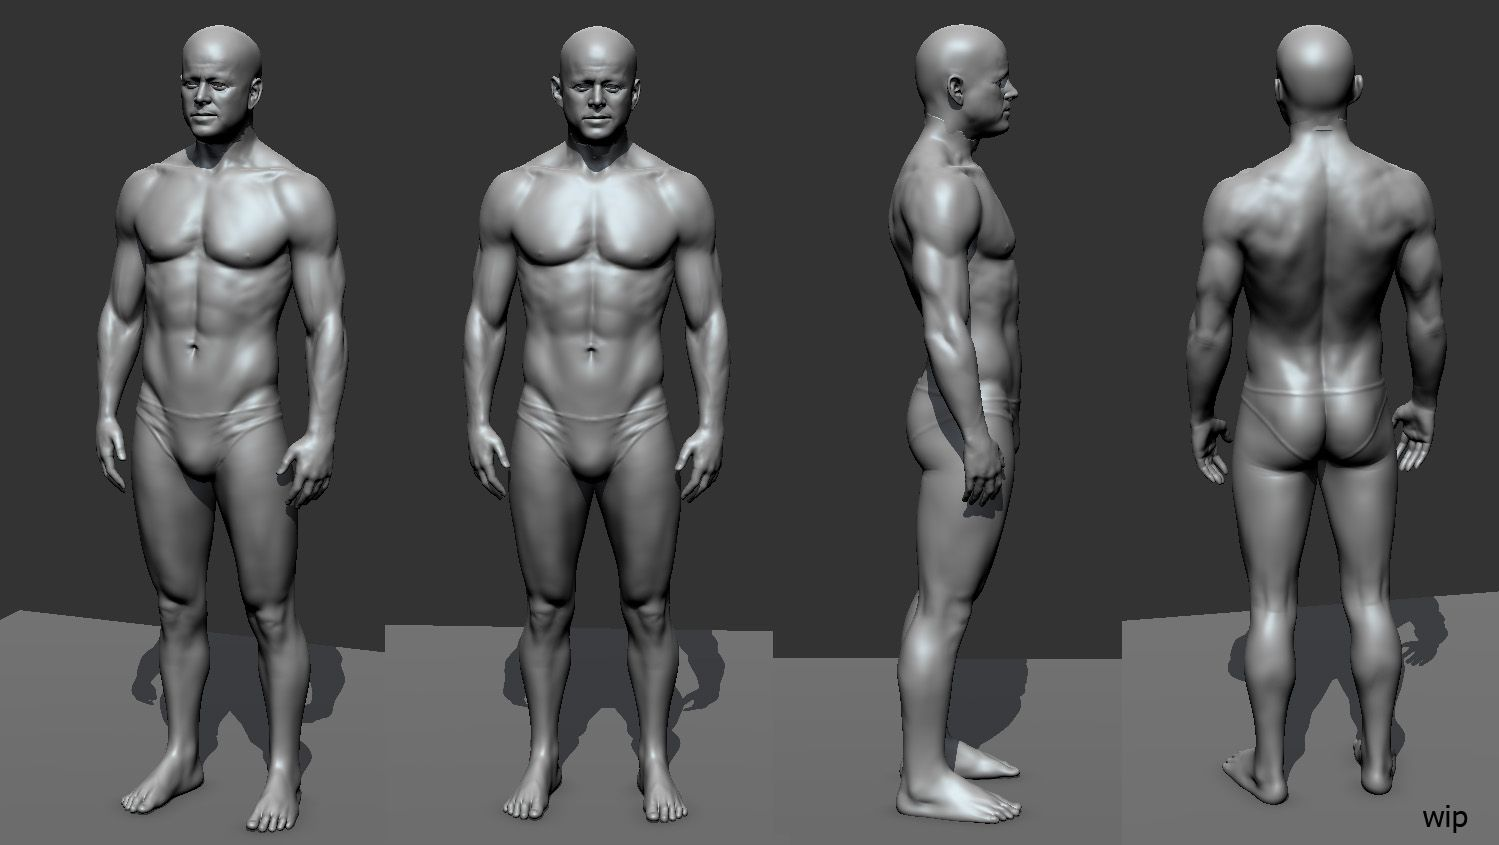 Pin By Thecgbros On Zbrush Sculpting Human Anatomy Reference